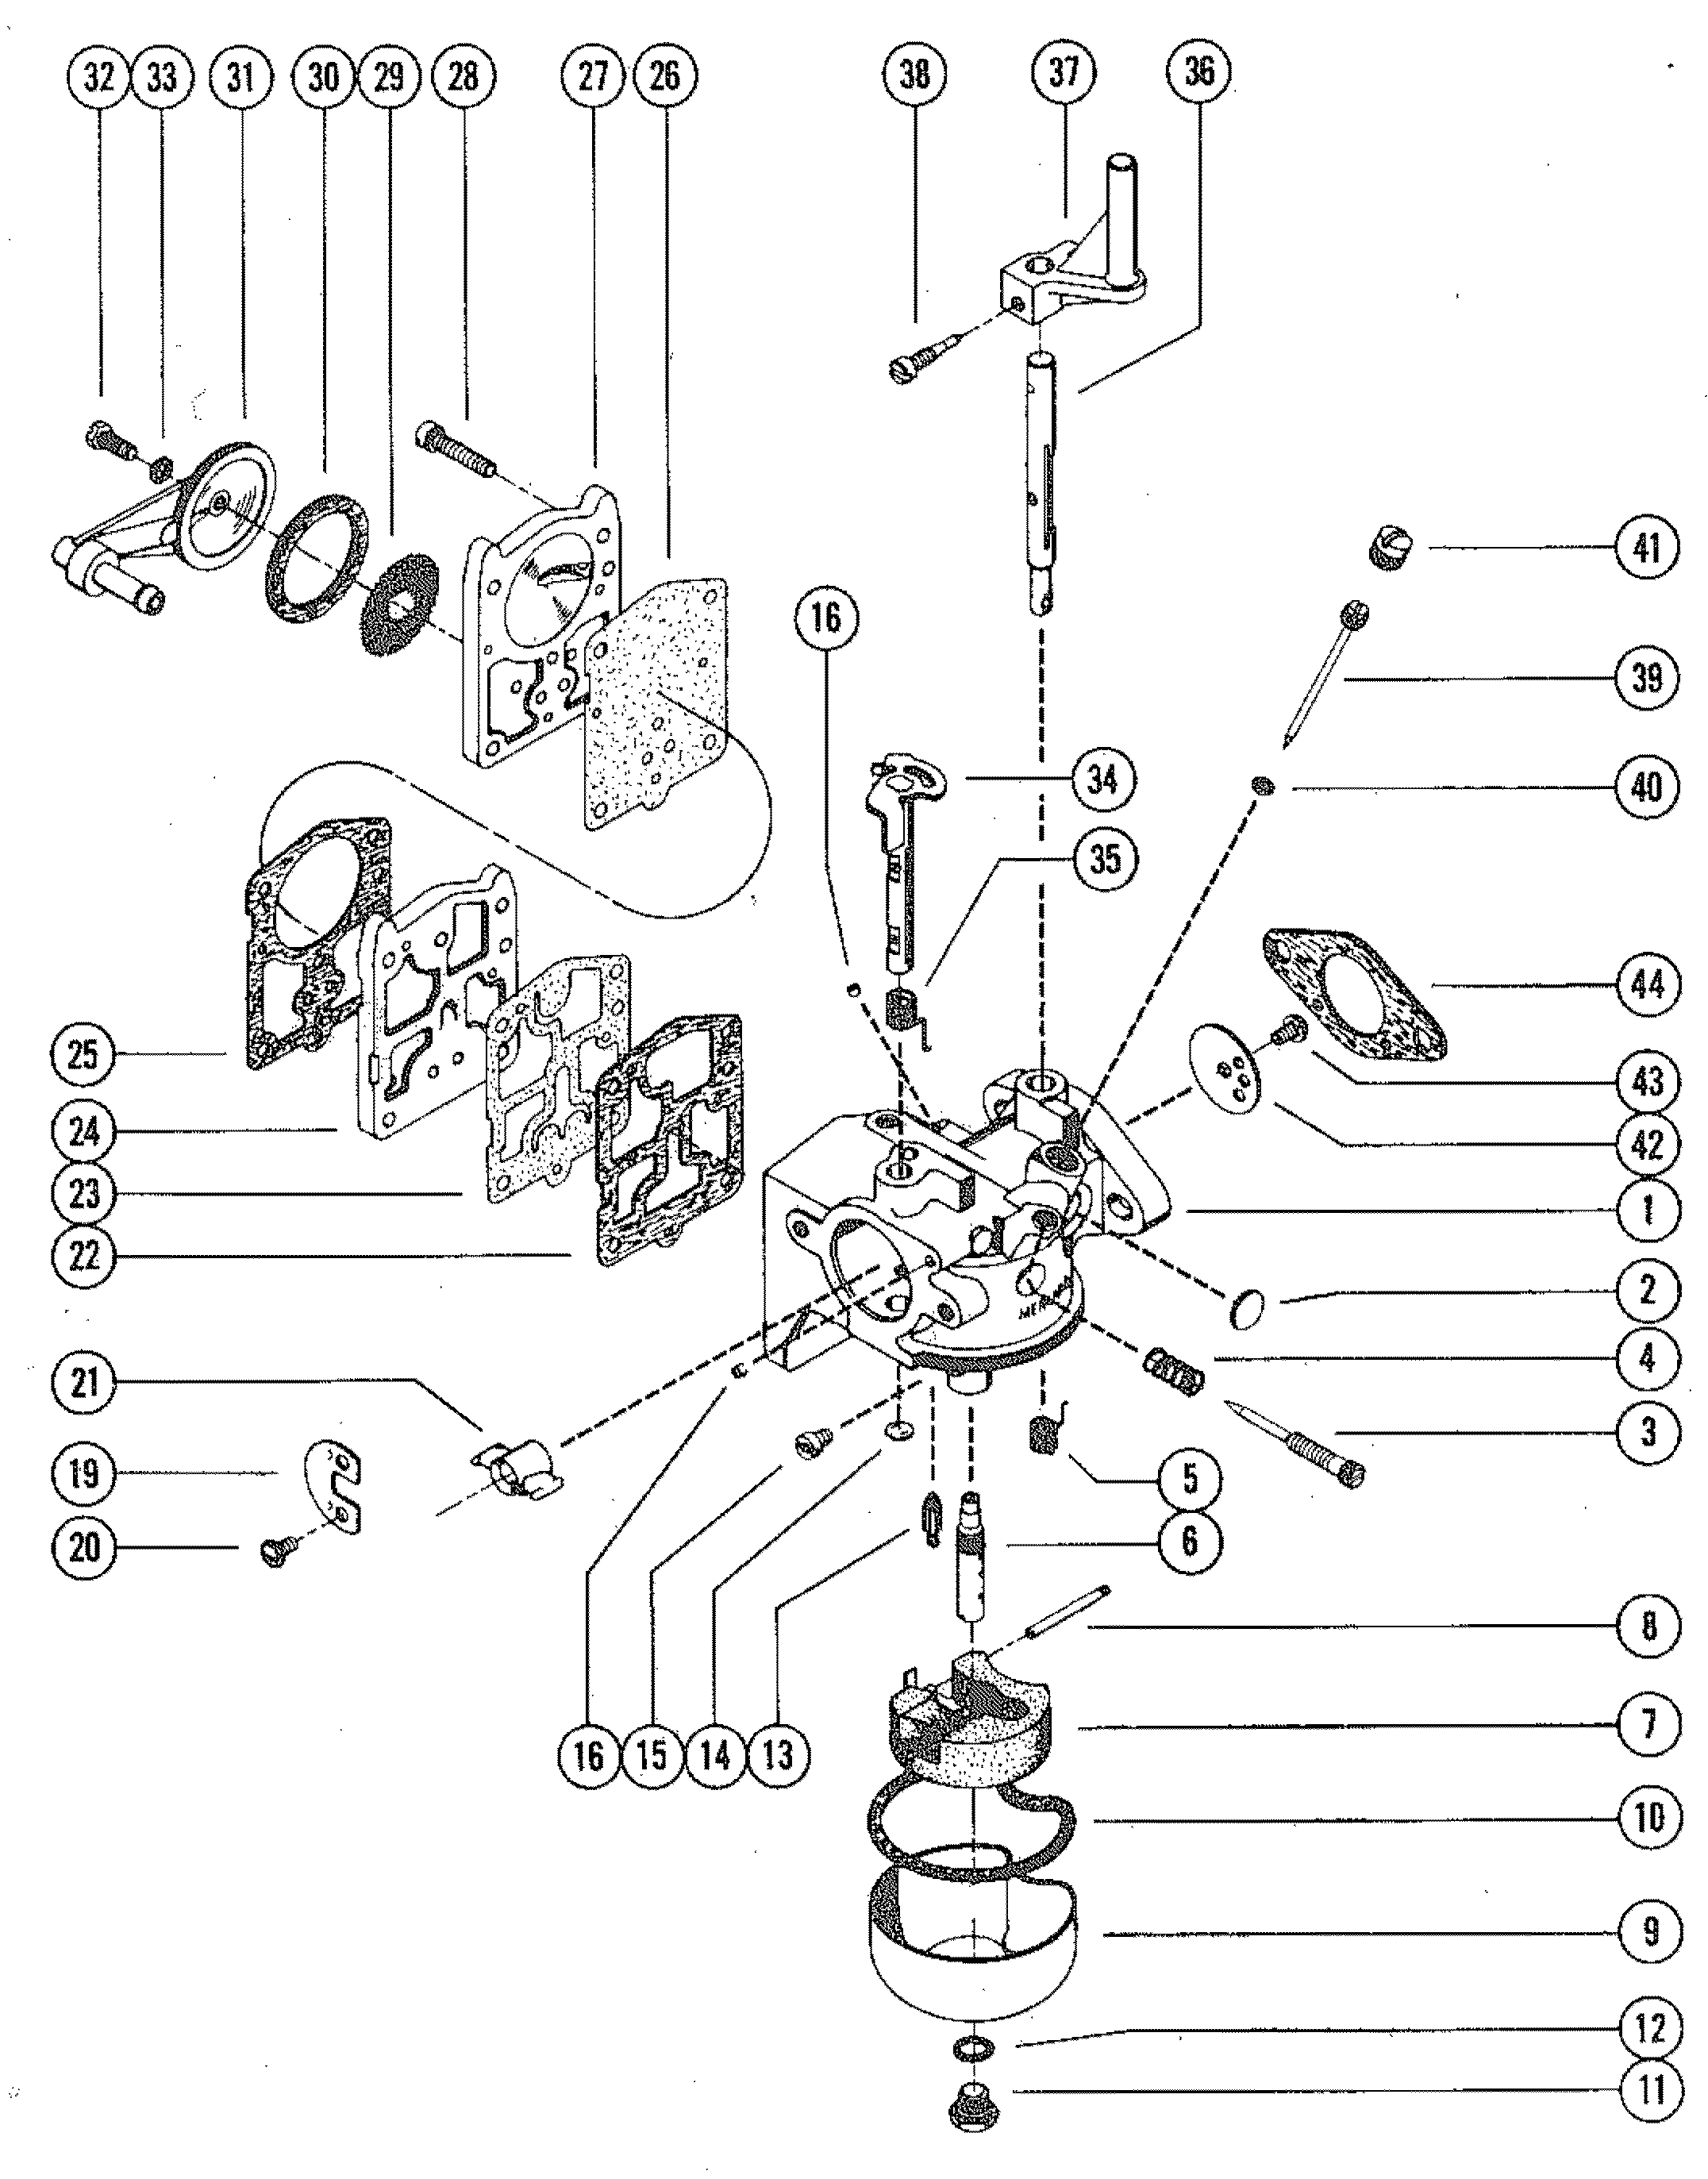 mercury 110 9 8 hp outboard wiring diagram carburetor assembly, complete for mercury merc 110